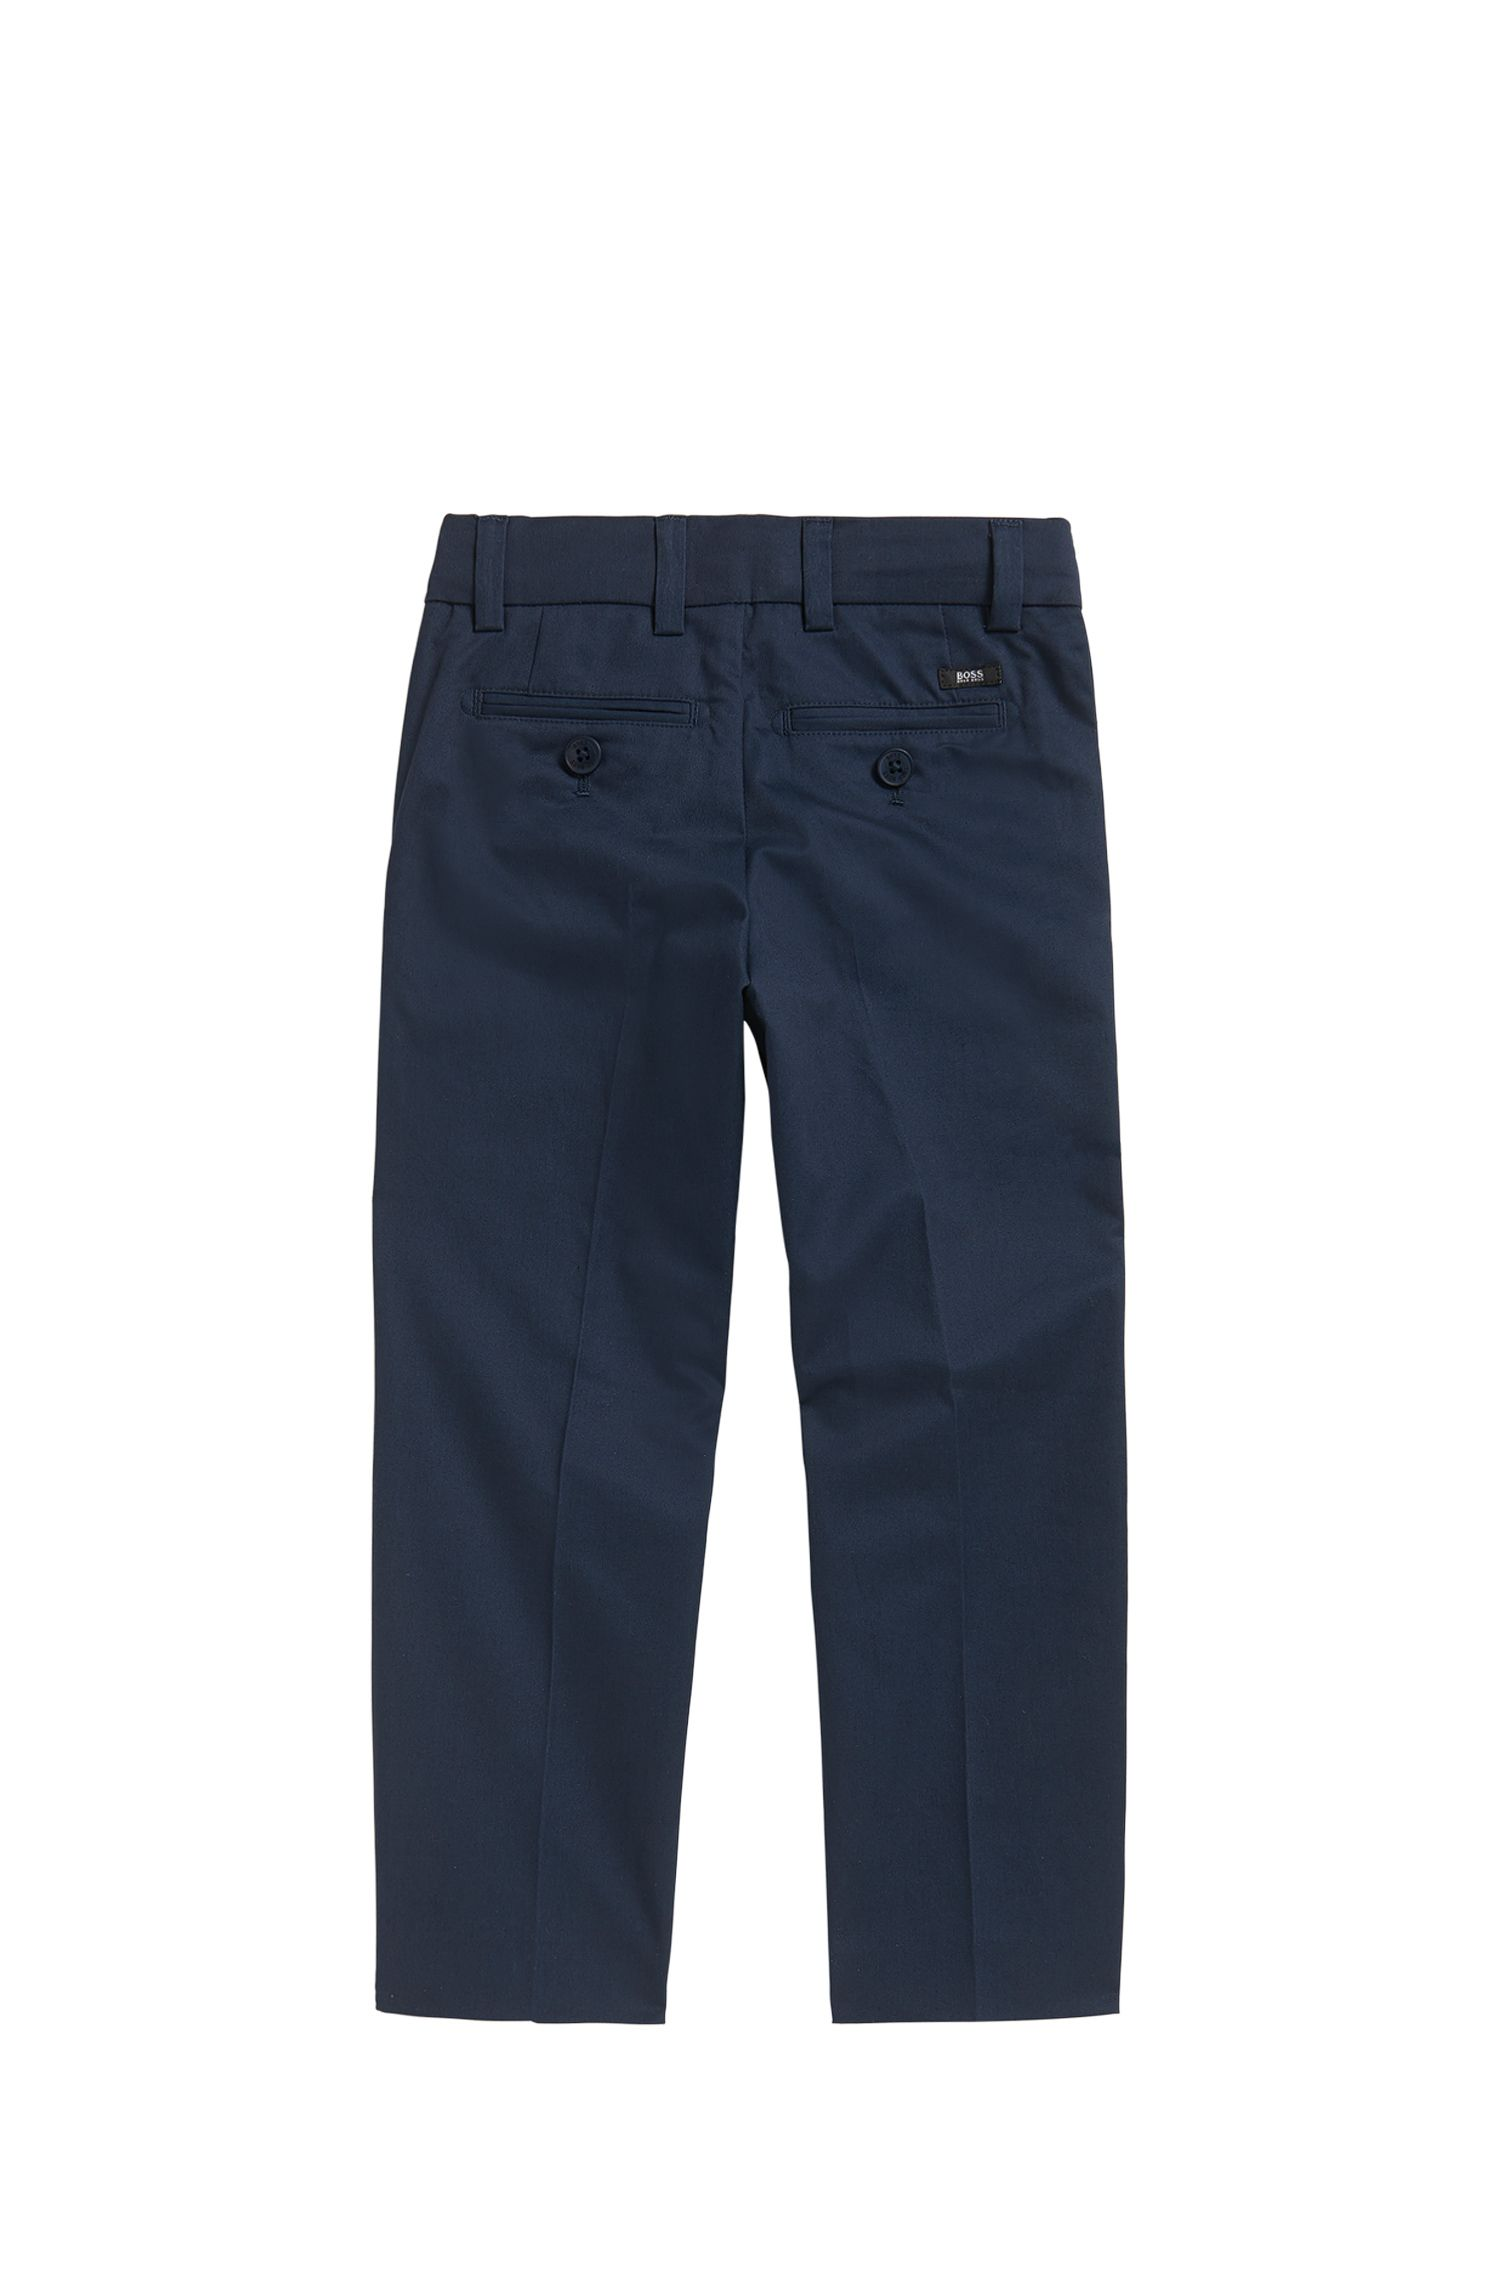 Pantalon de costume Regular Fit pour enfant en twill de coton